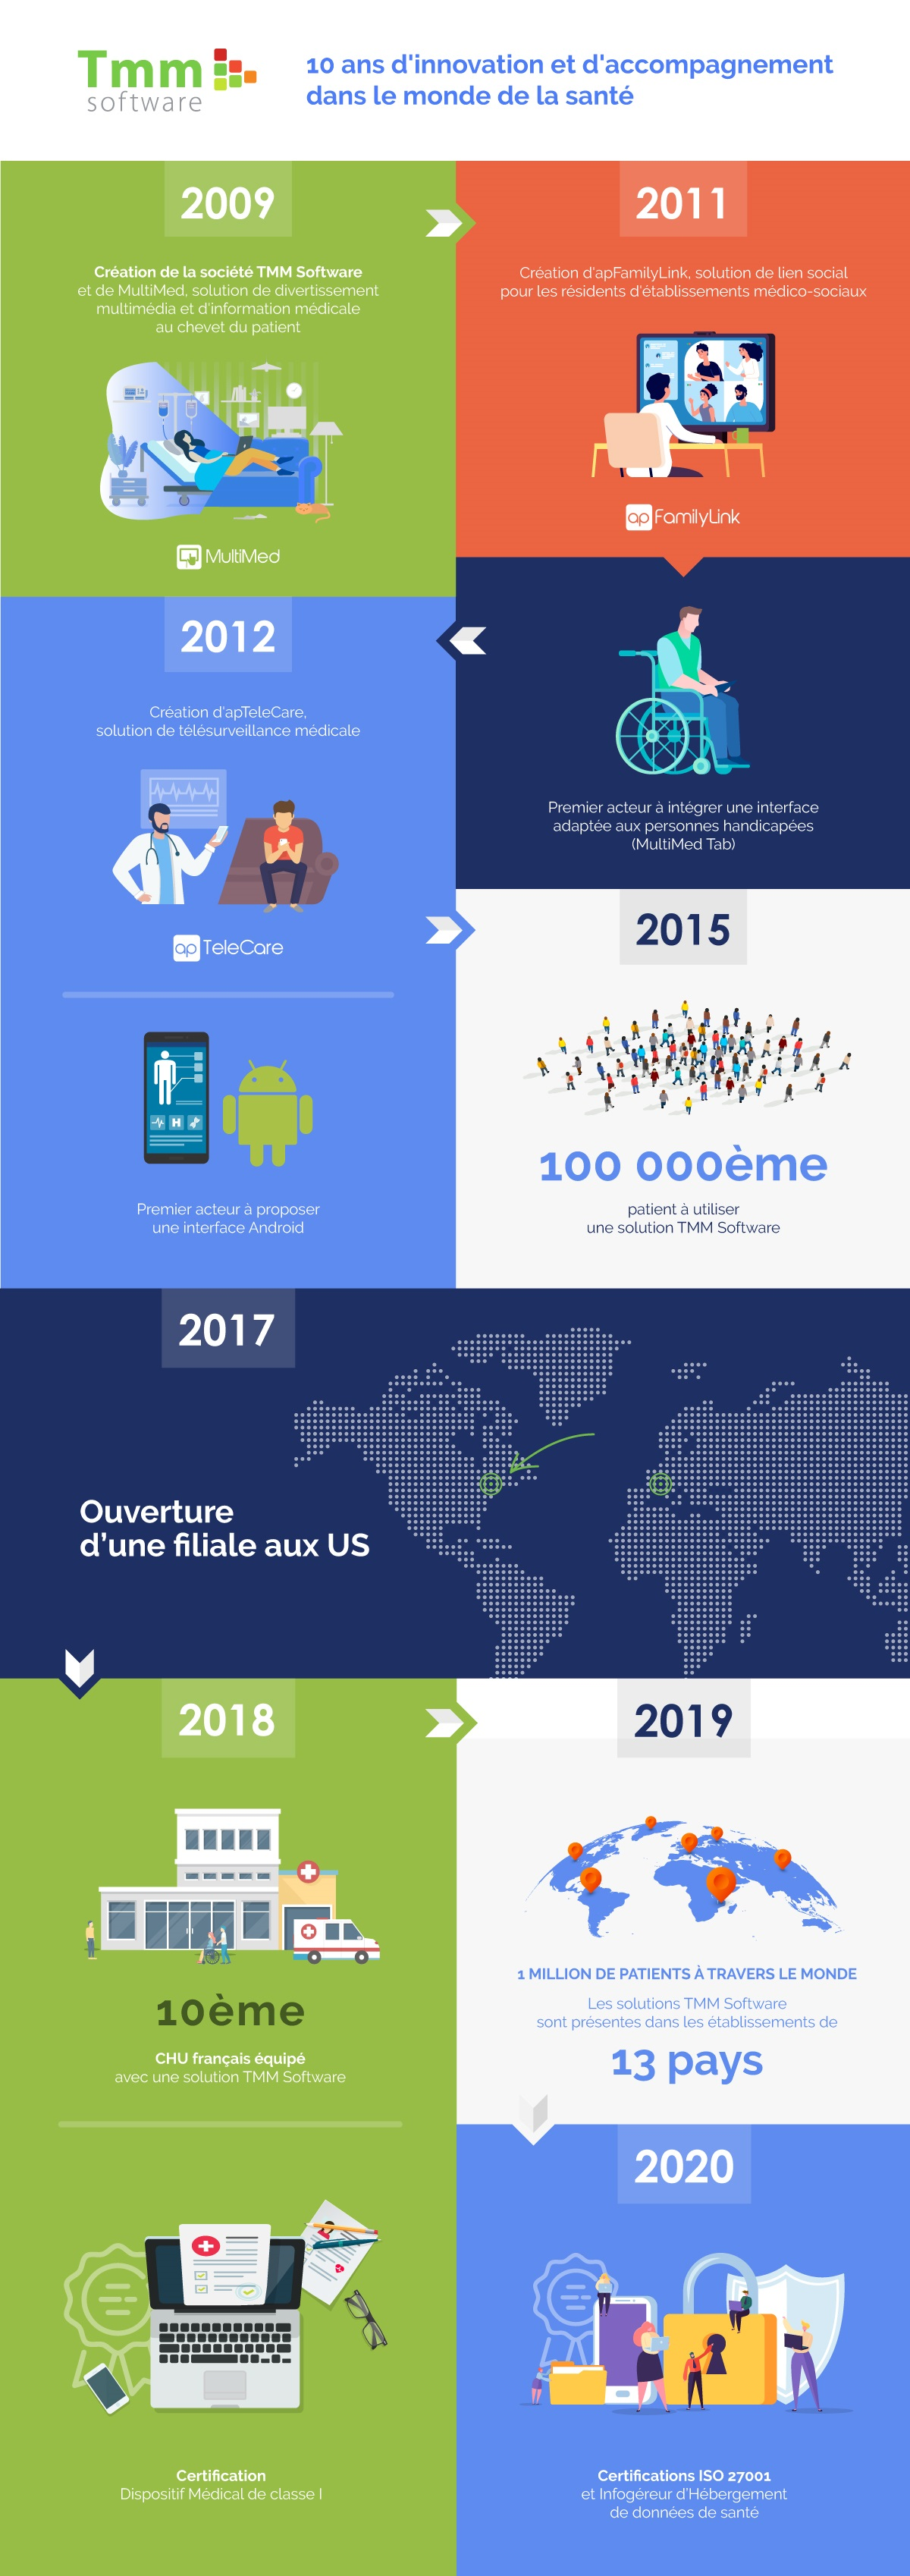 infographie tmm software 10 ans